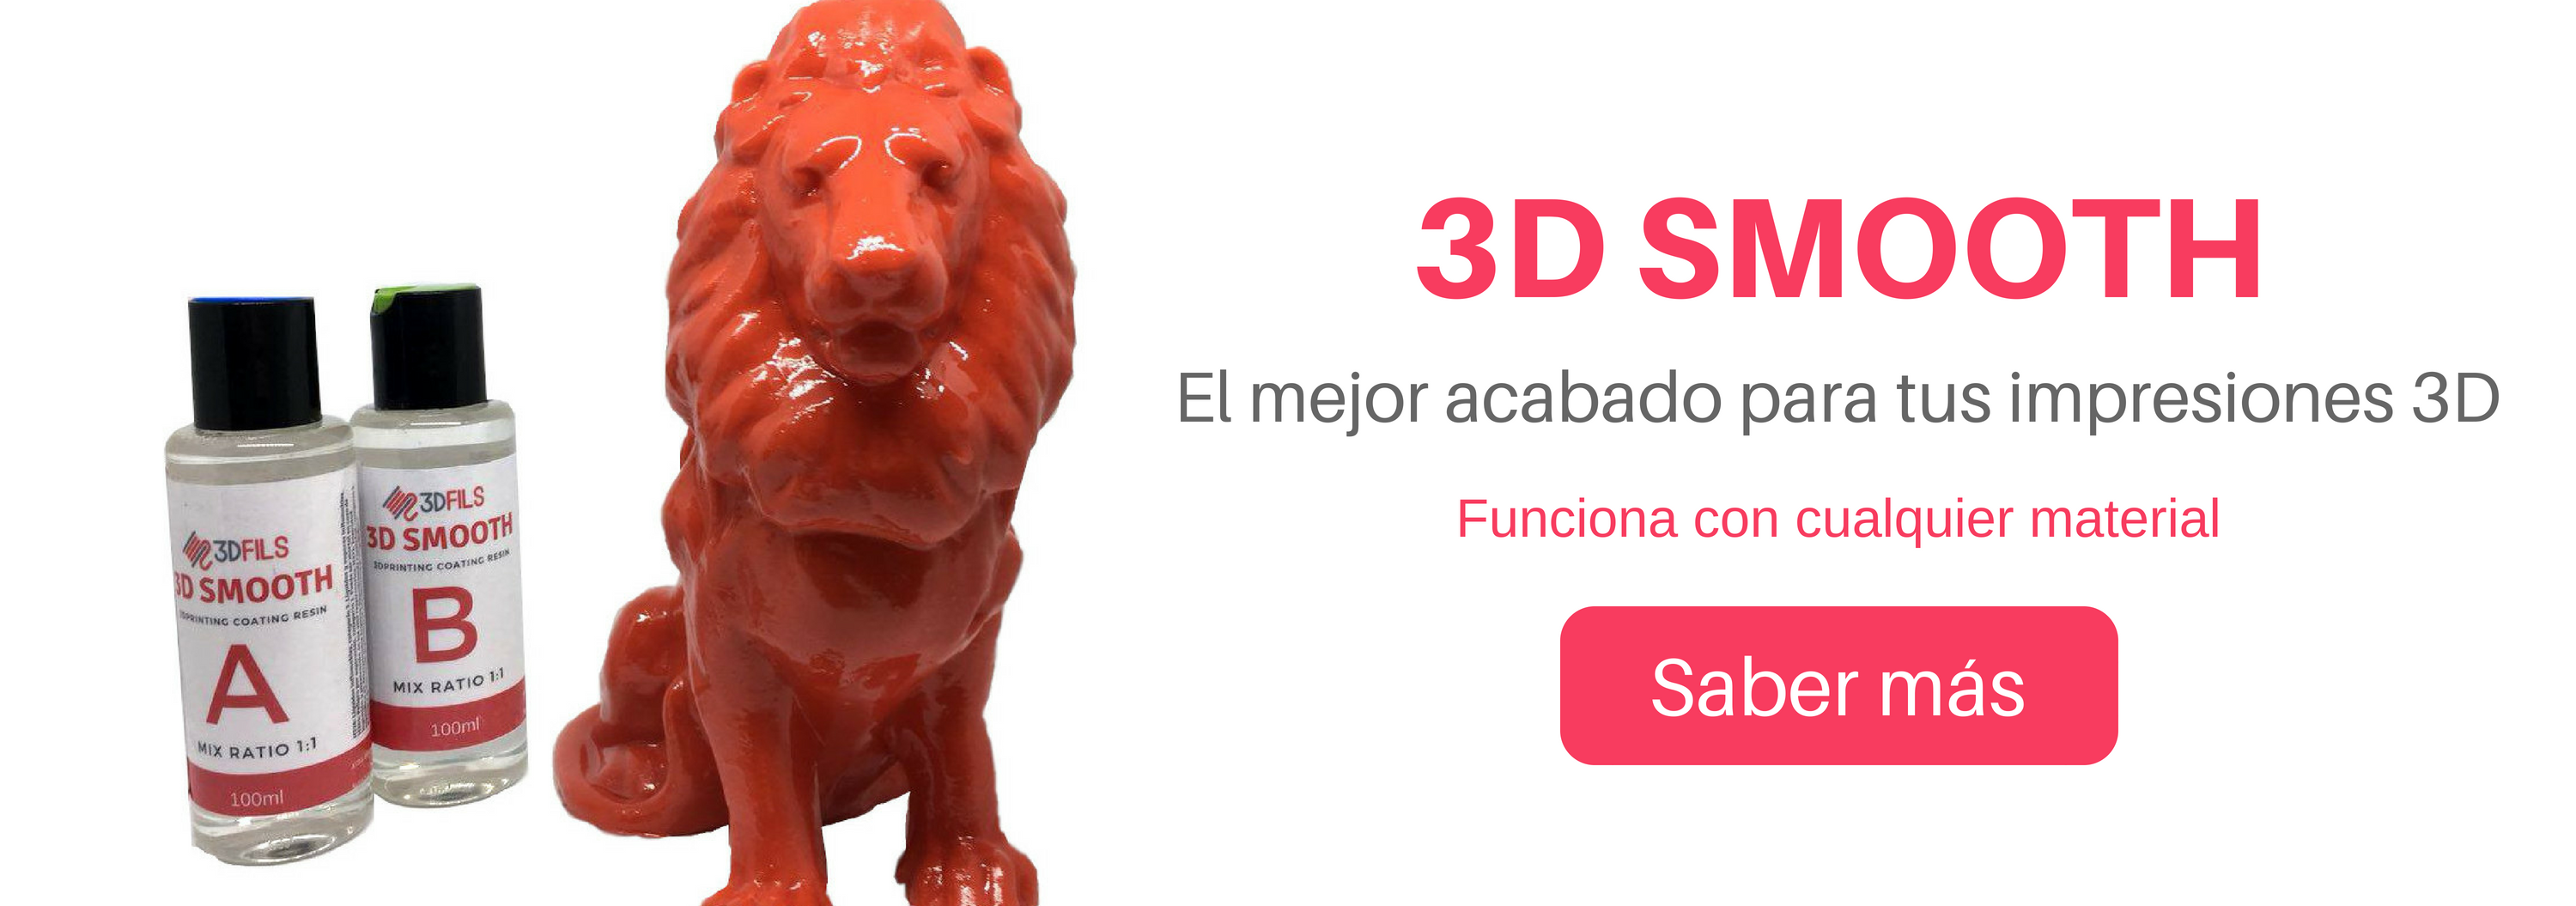 eFil flexible filament for 3D printing